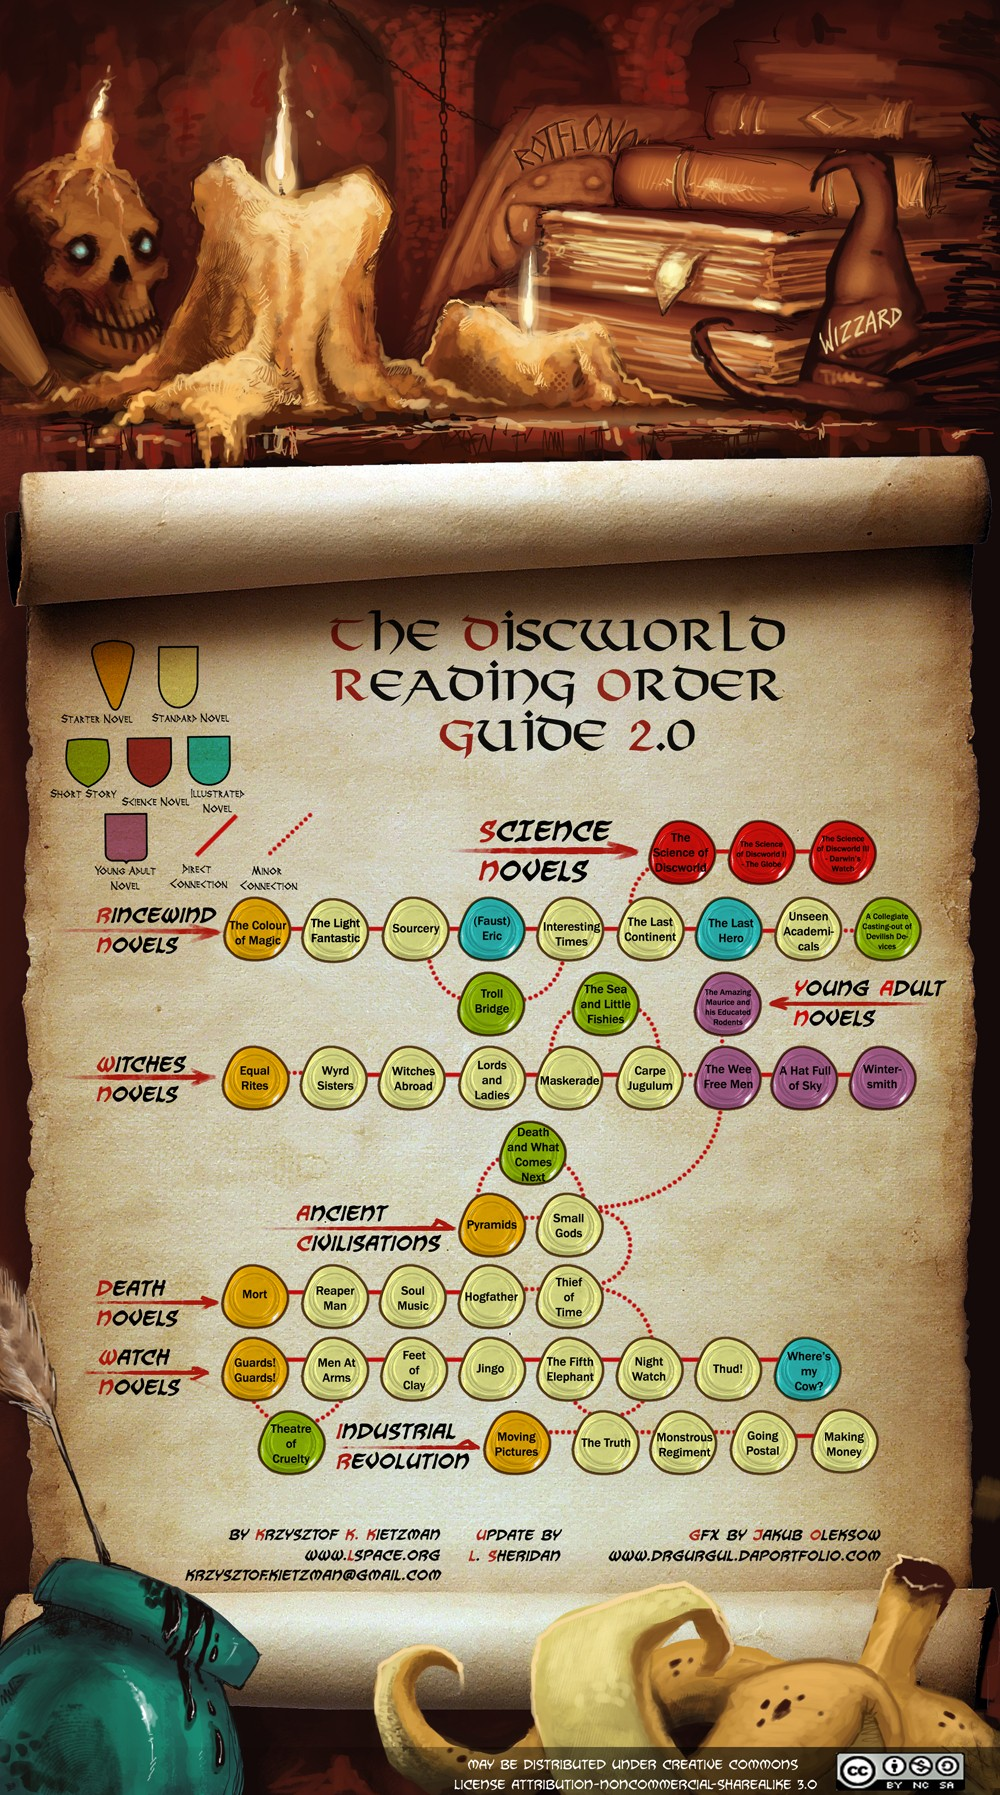 Discworld Reading order v2.0 (all credits to lspace.org)